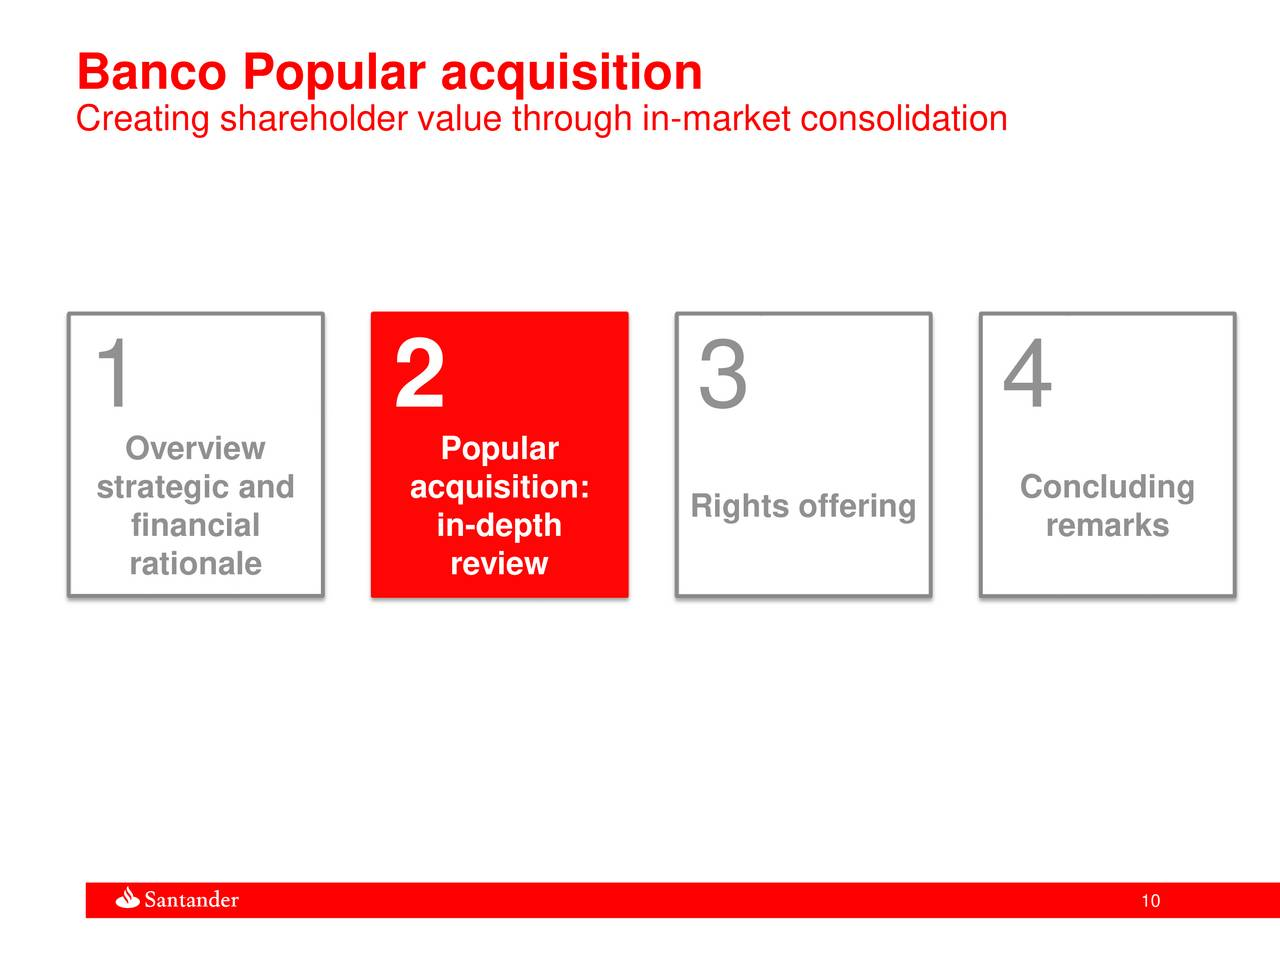 banco santander and the acquisition of Madrid -- banco santander sa has acquired banco popular español sa in an overnight auction for the notional amount of eur1 ($113) after the european central bank.